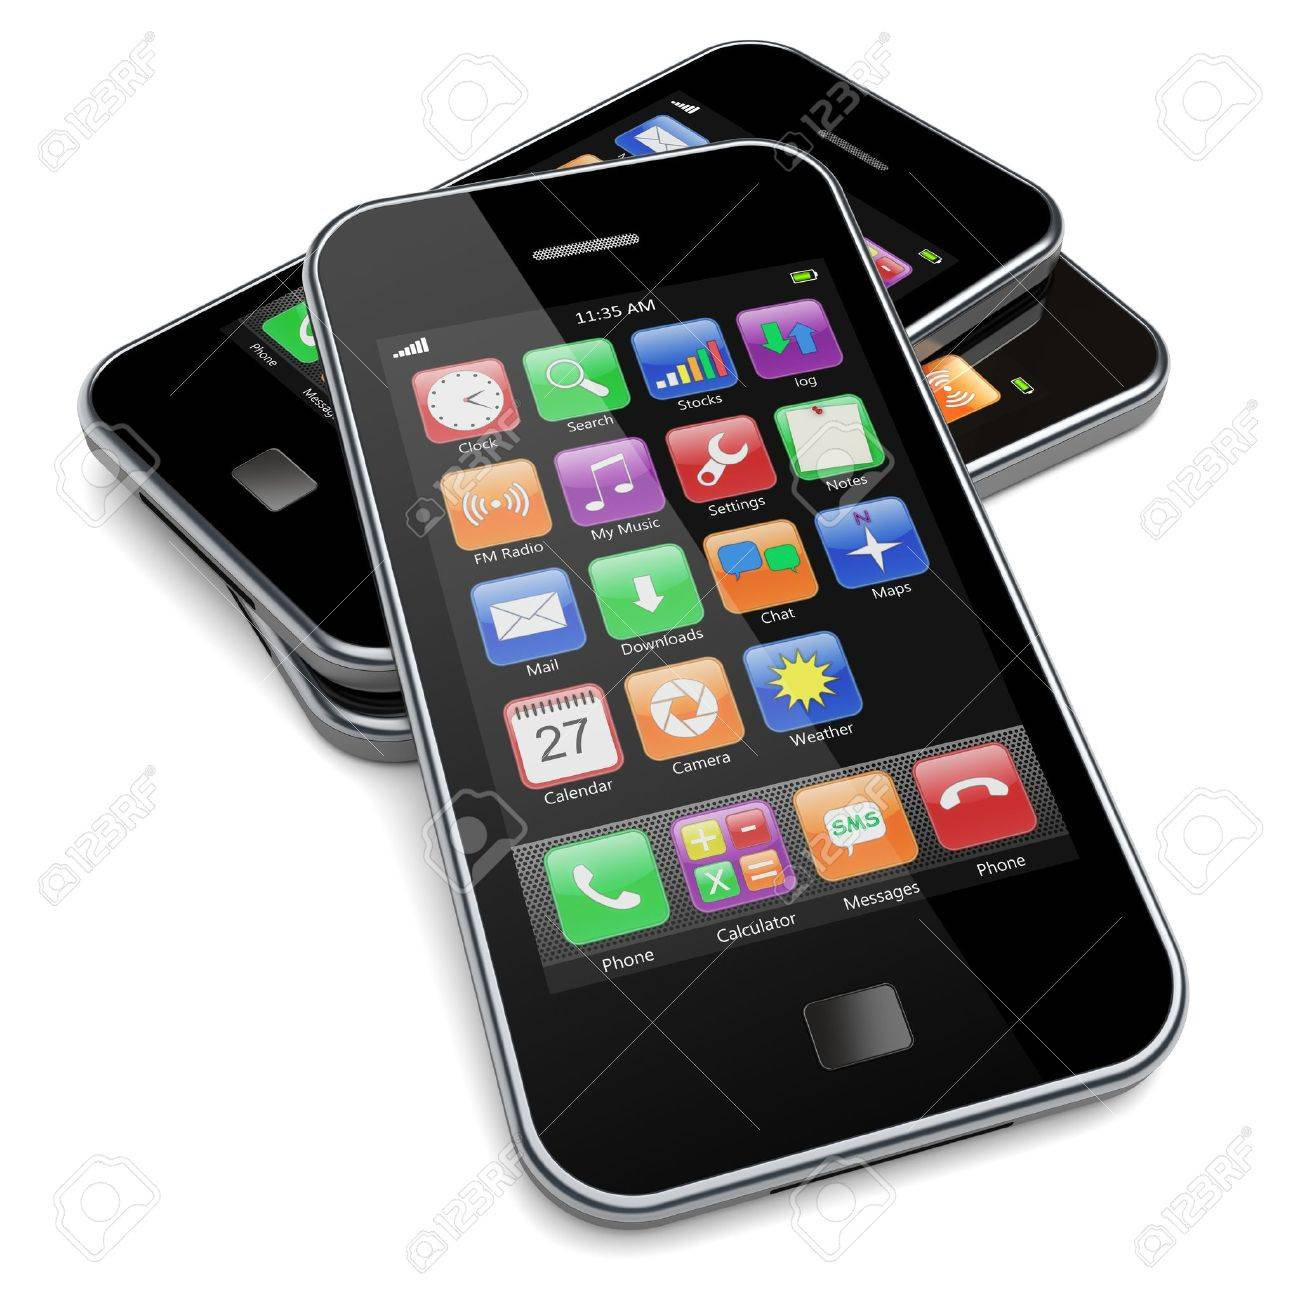 Mobile phones with touchscreen and colorful apps   3d image Stock Photo - 13510602